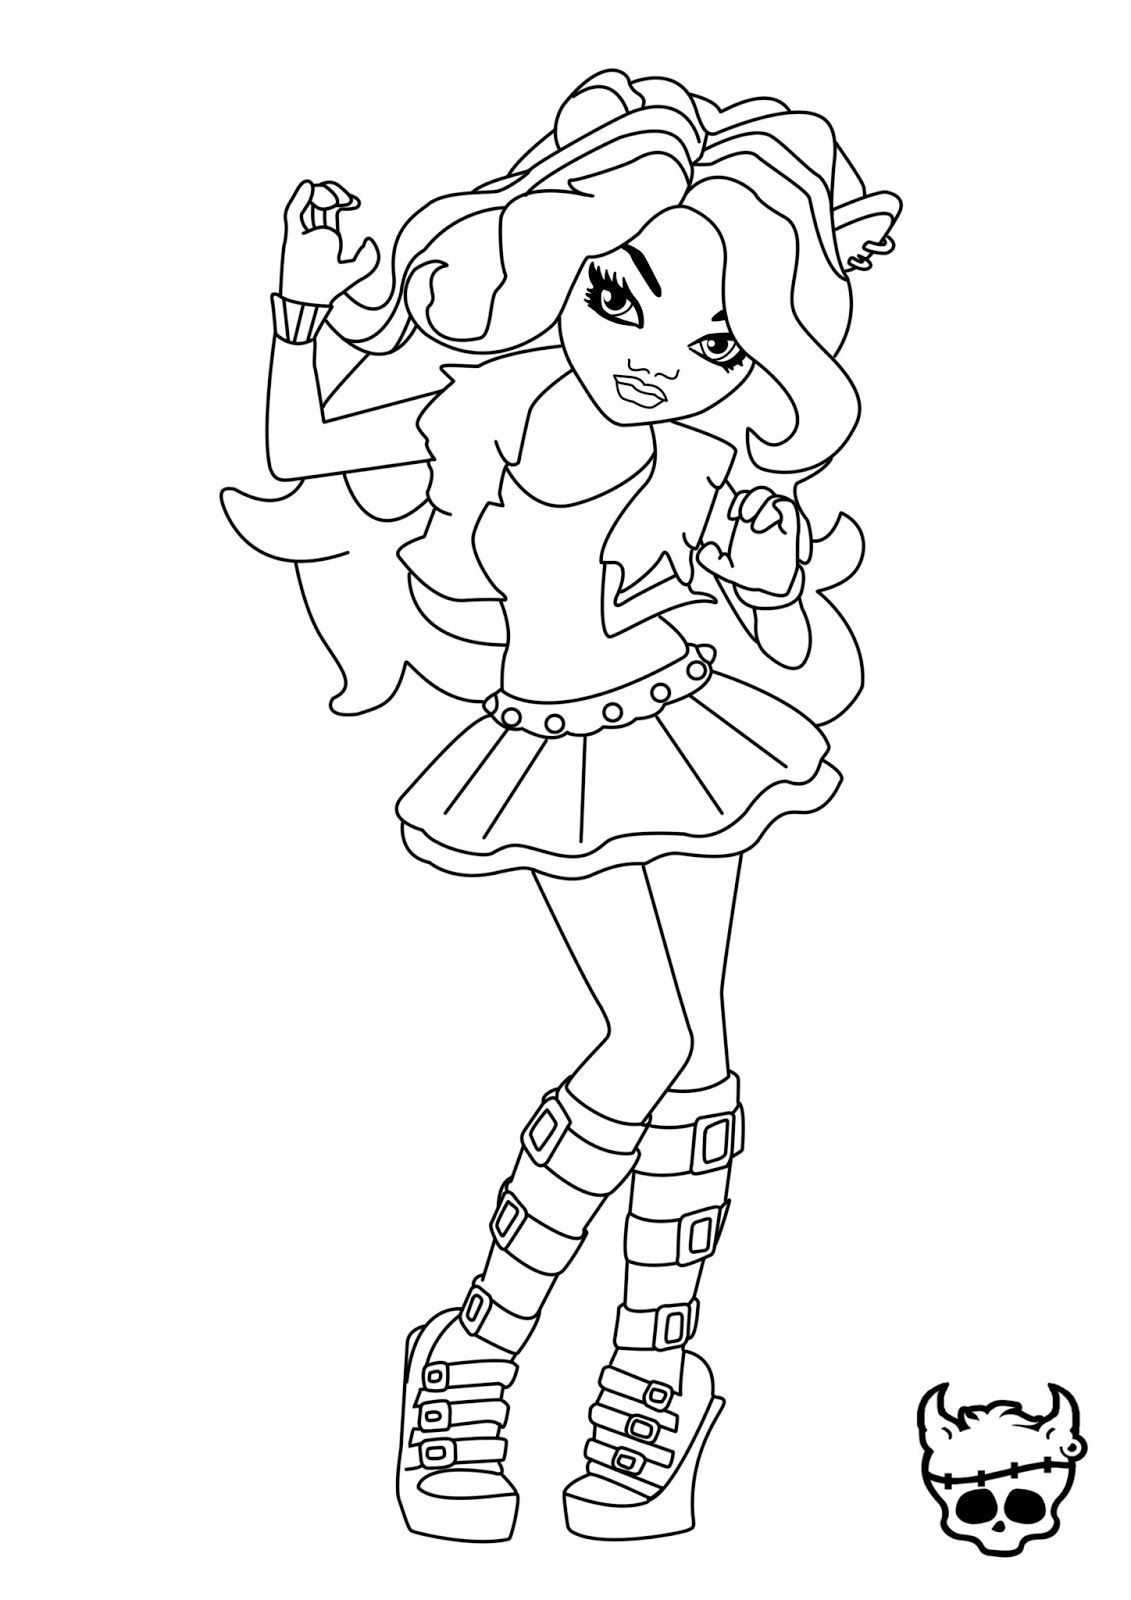 monster high coloring pages clawdeen wolf monster high clawdeen wolf coloring pages coloring home high wolf monster pages clawdeen coloring